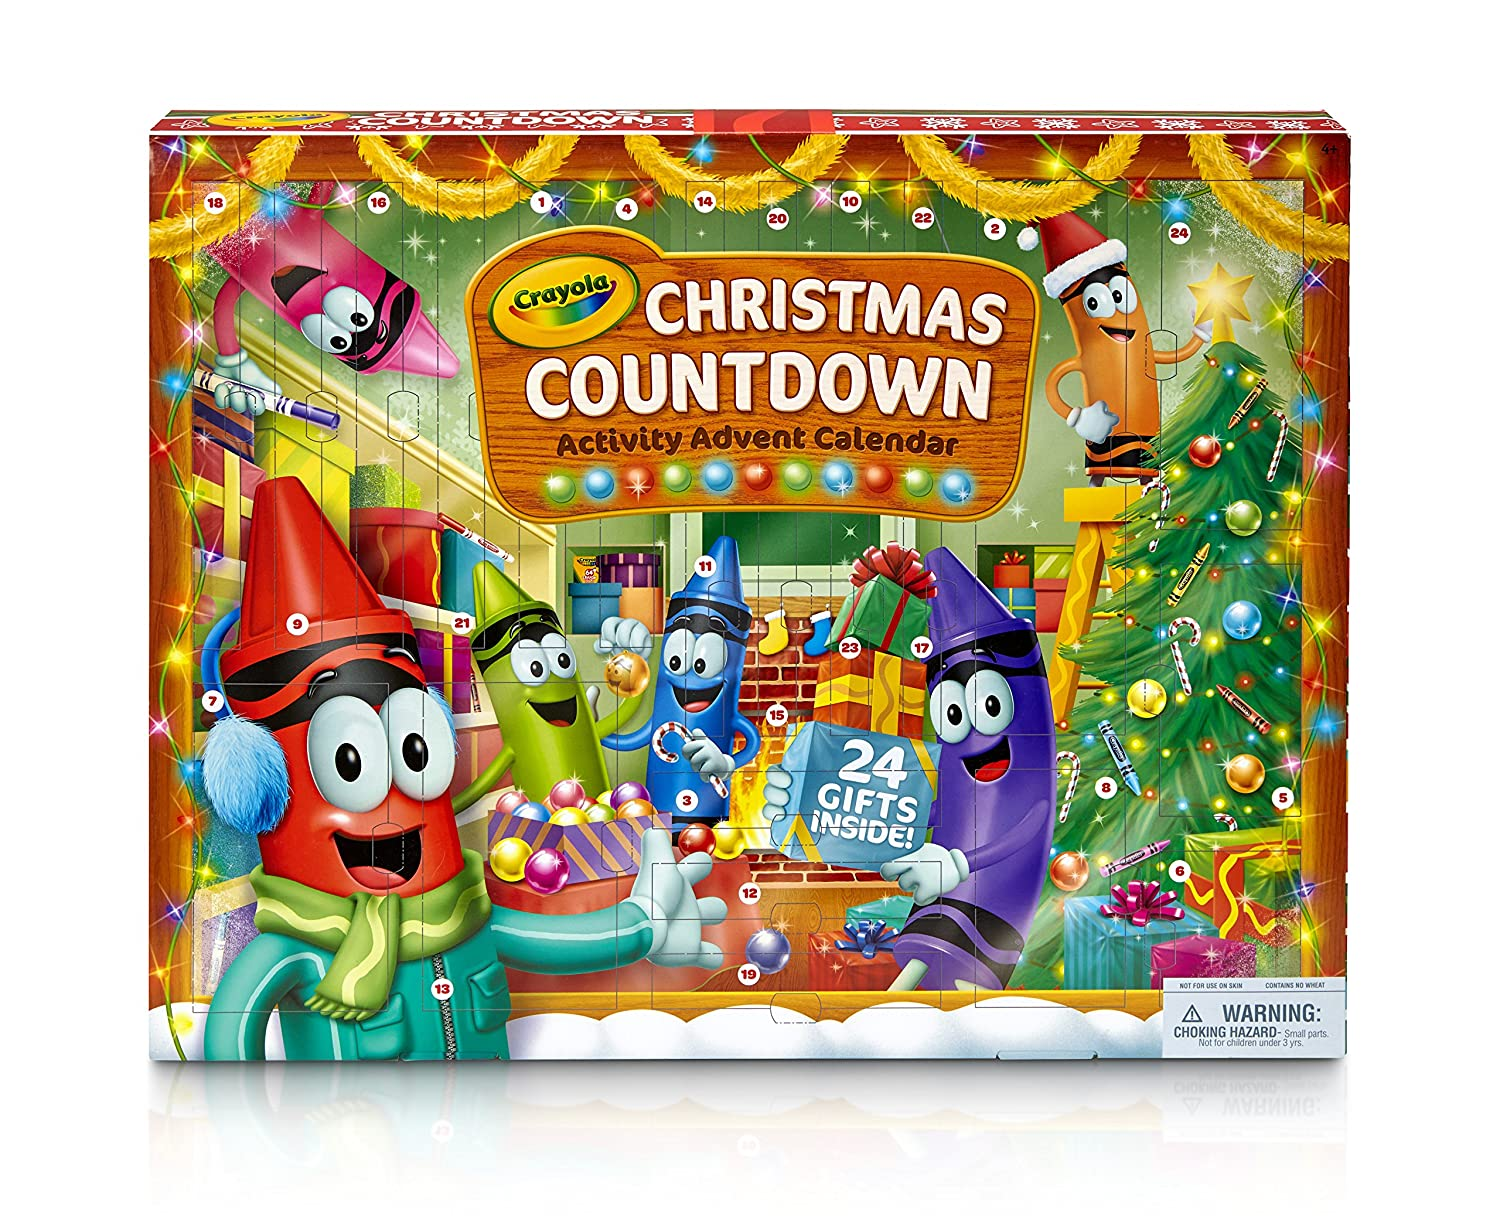 Christmas Countdown Calendar.Crayola Christmas Countdown Activity Advent Calendar